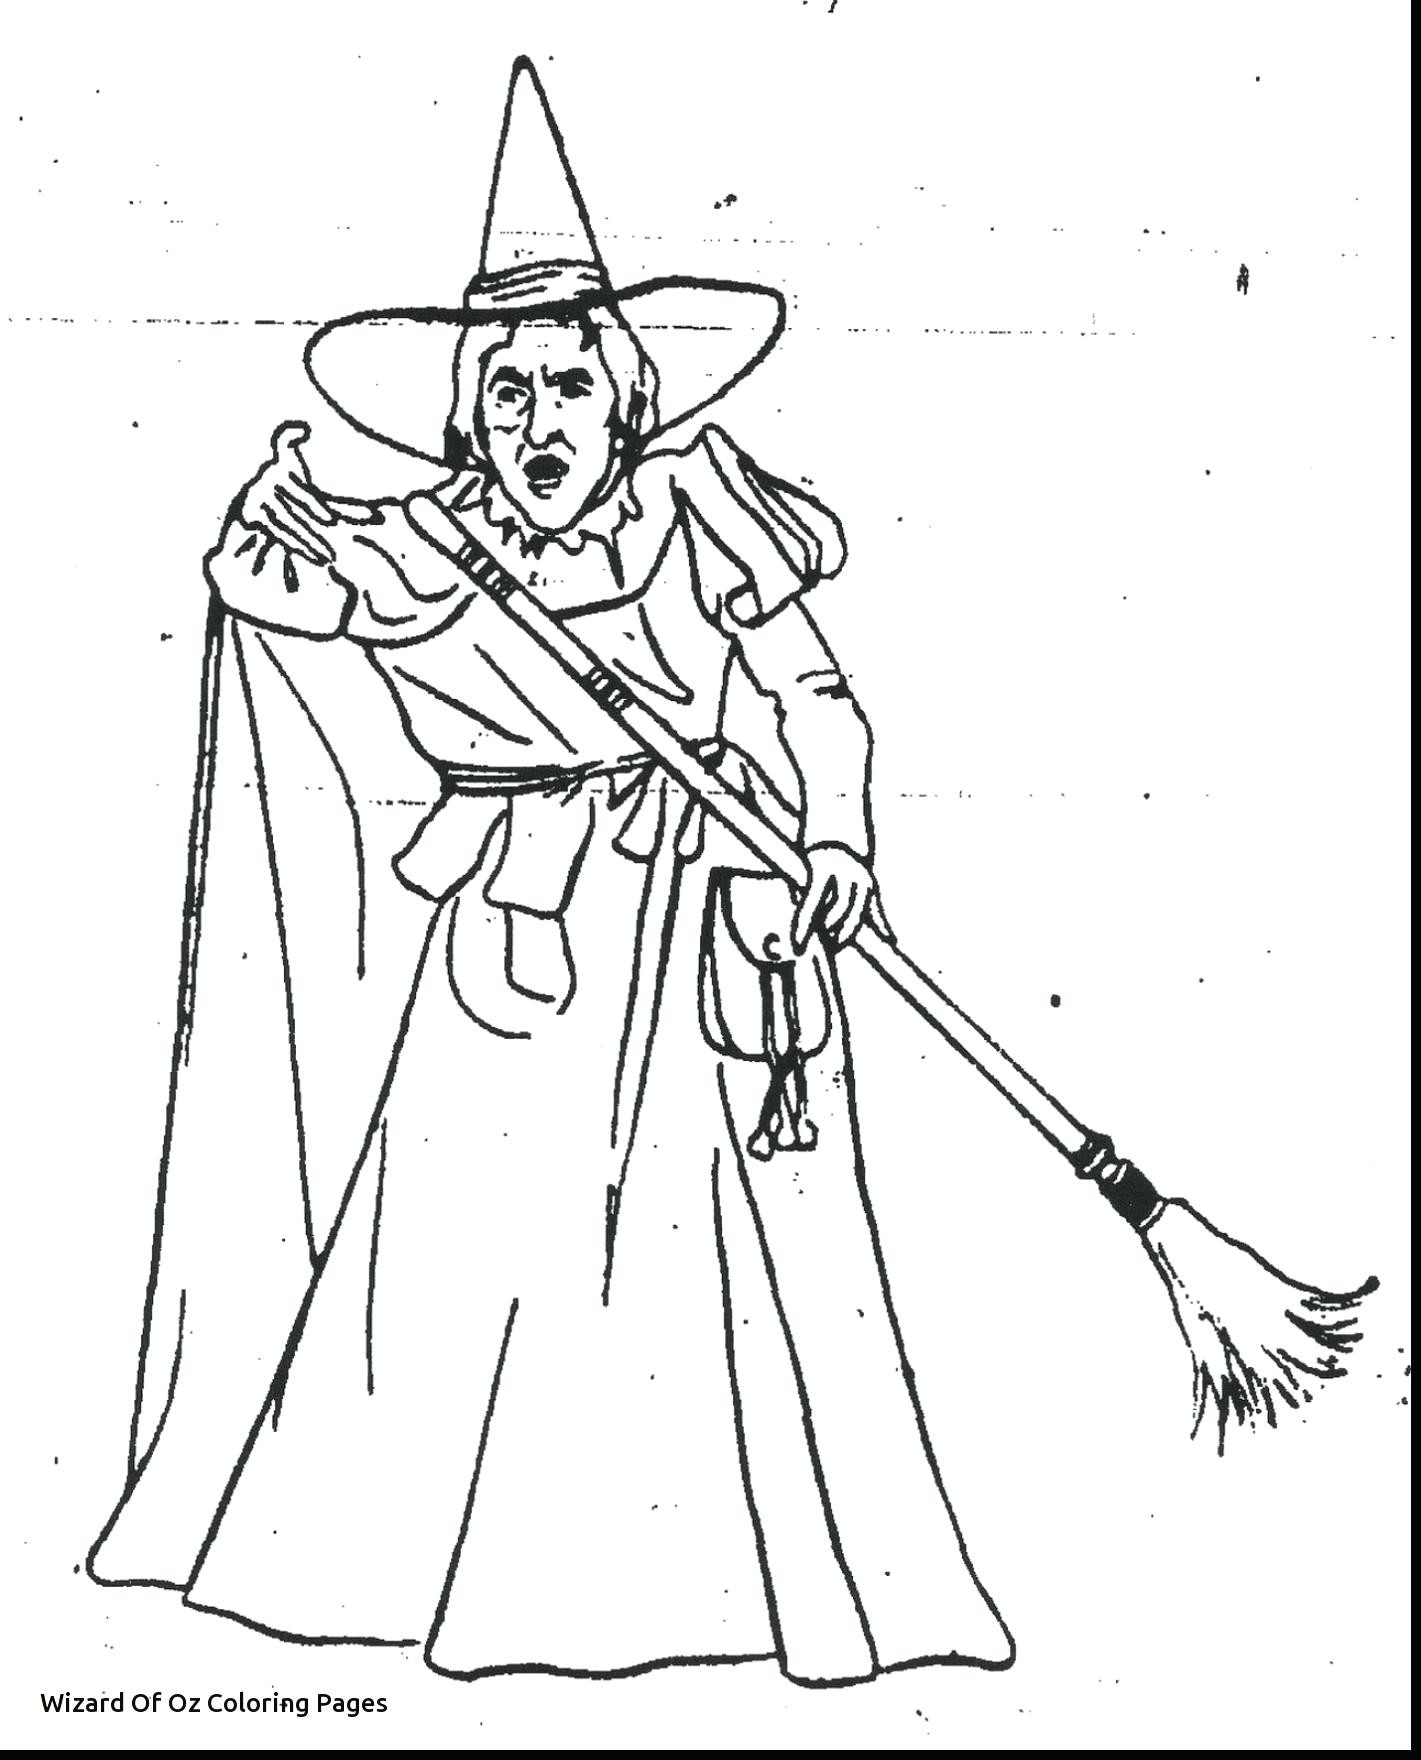 The Wizard Of Oz Coloring Pages Printable